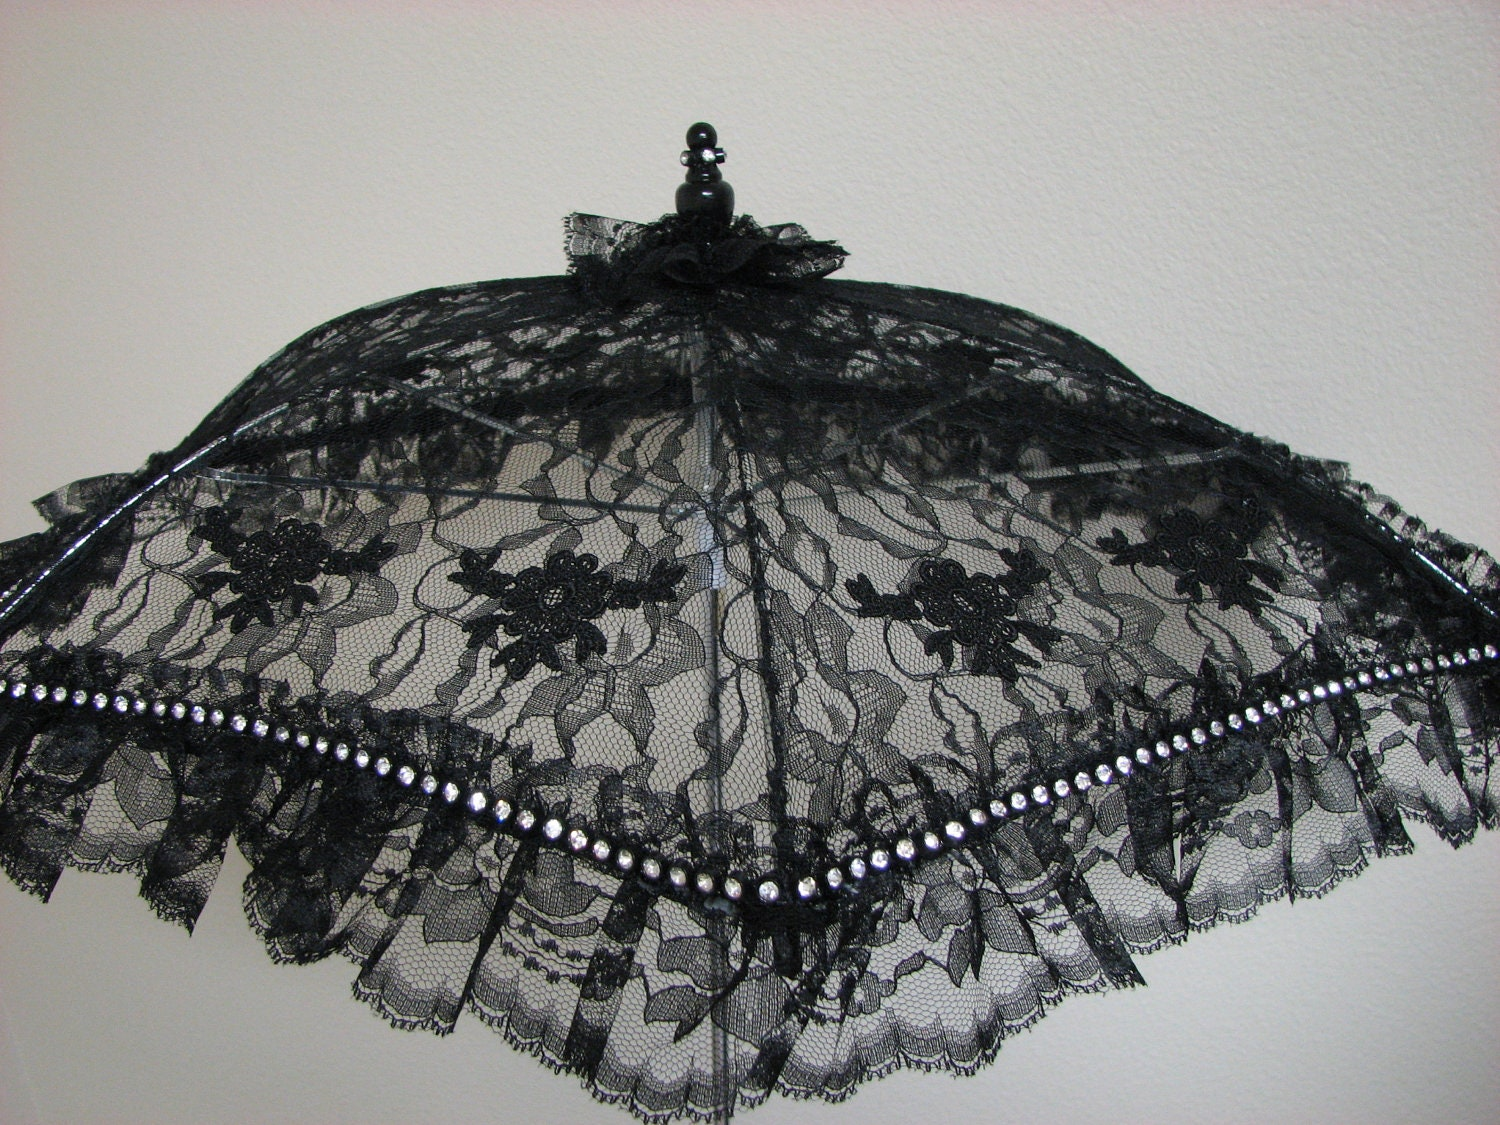 VICTORIAN PARASOL in Black Lace Embellished with Large